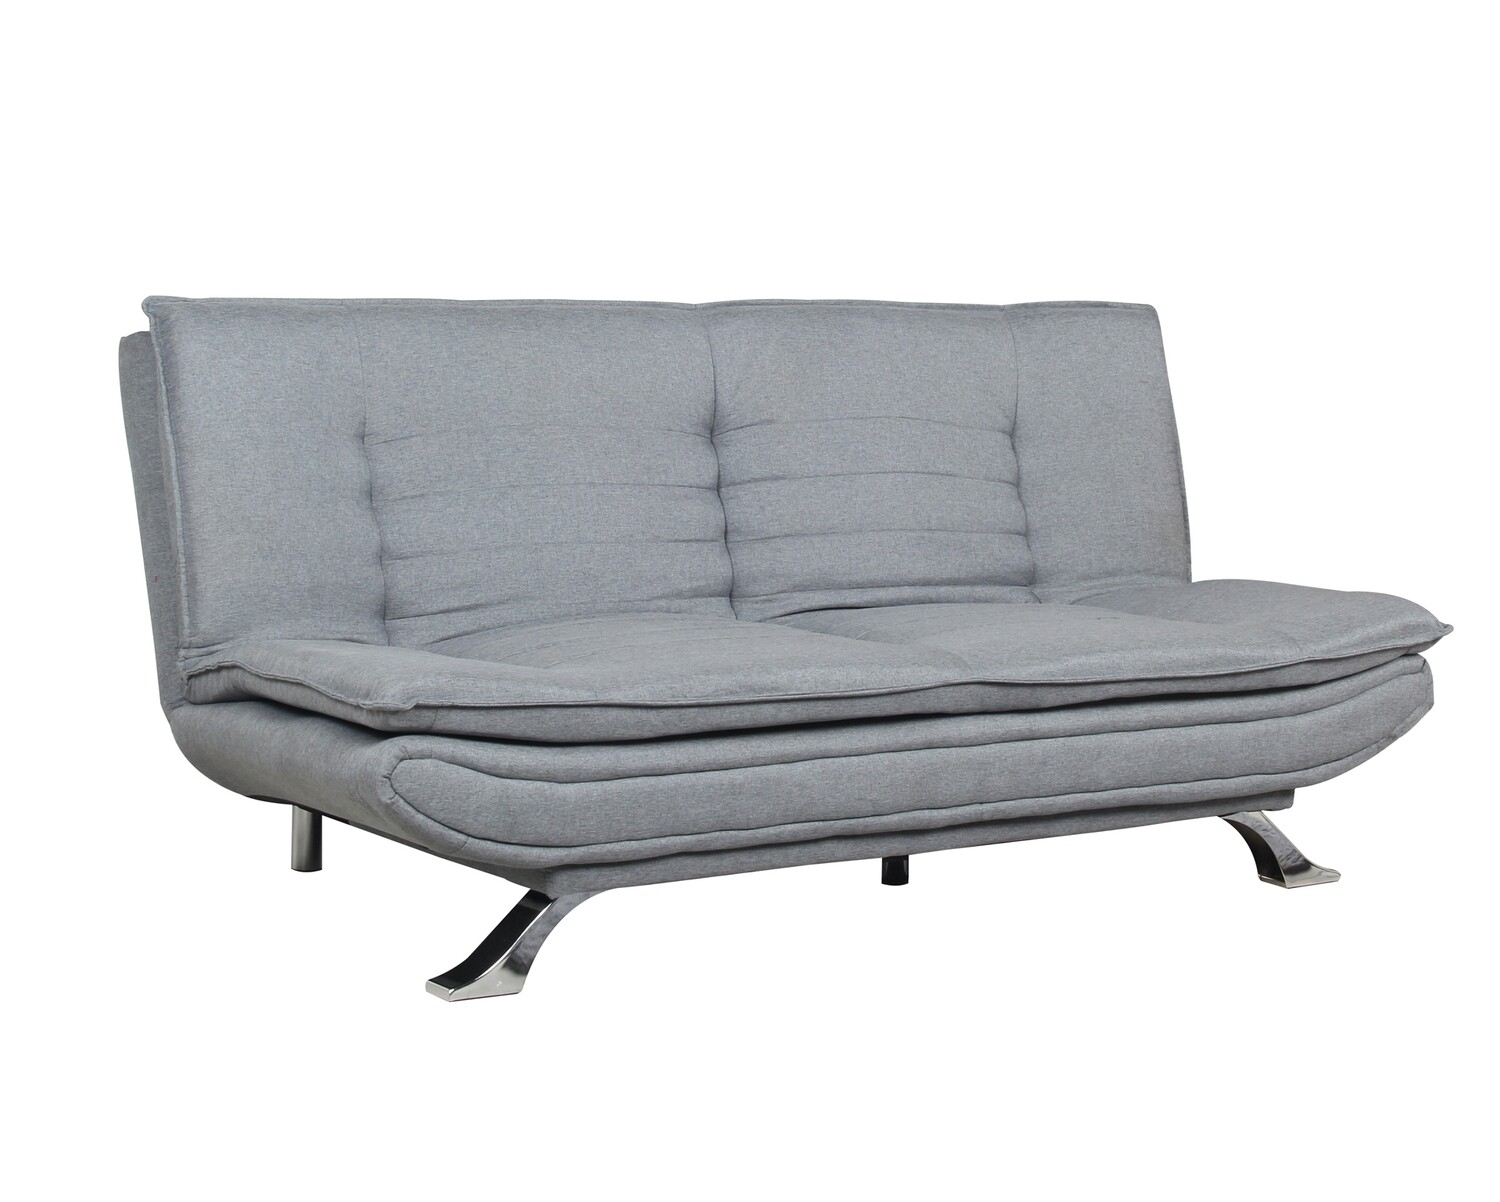 Flotti Elora Sofa Bed (Grey)